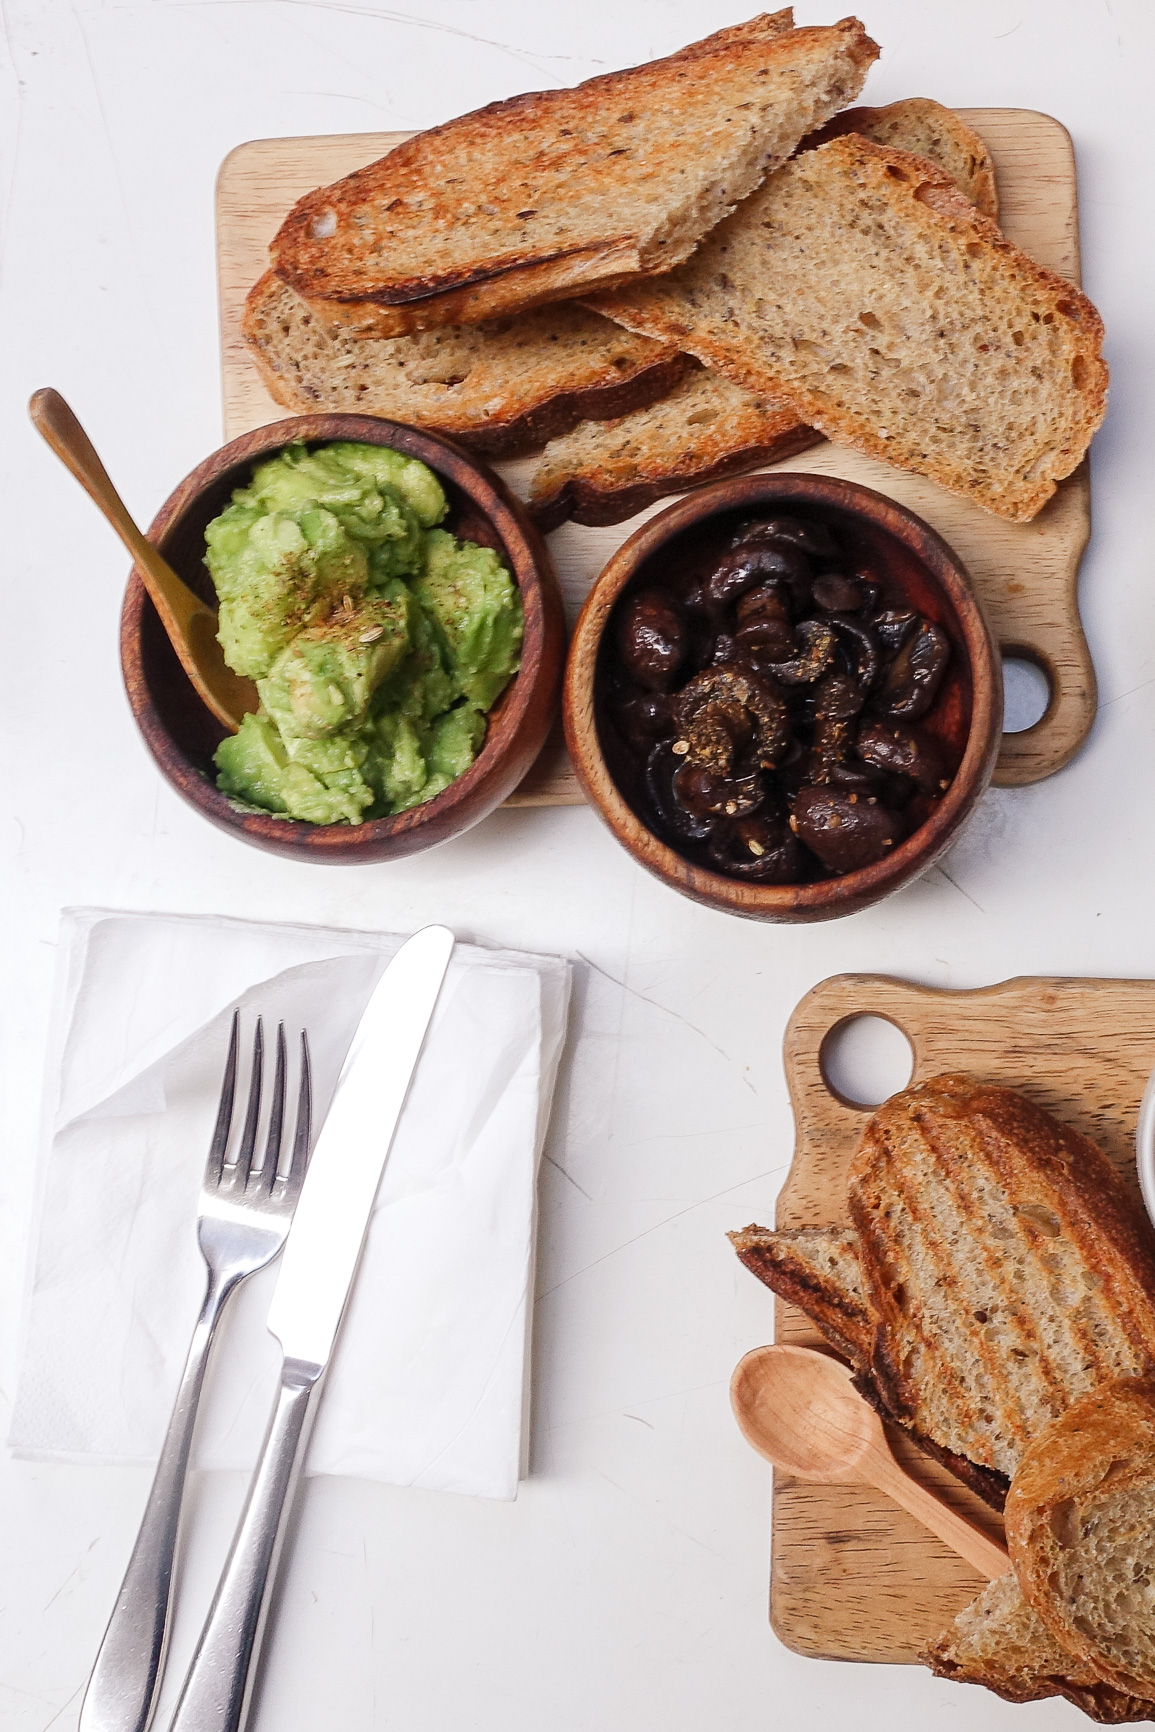 House made whole grain sourdough toast with avocado and swiss brown mushrooms ($10.00, $3.00 for add on of mushroom)